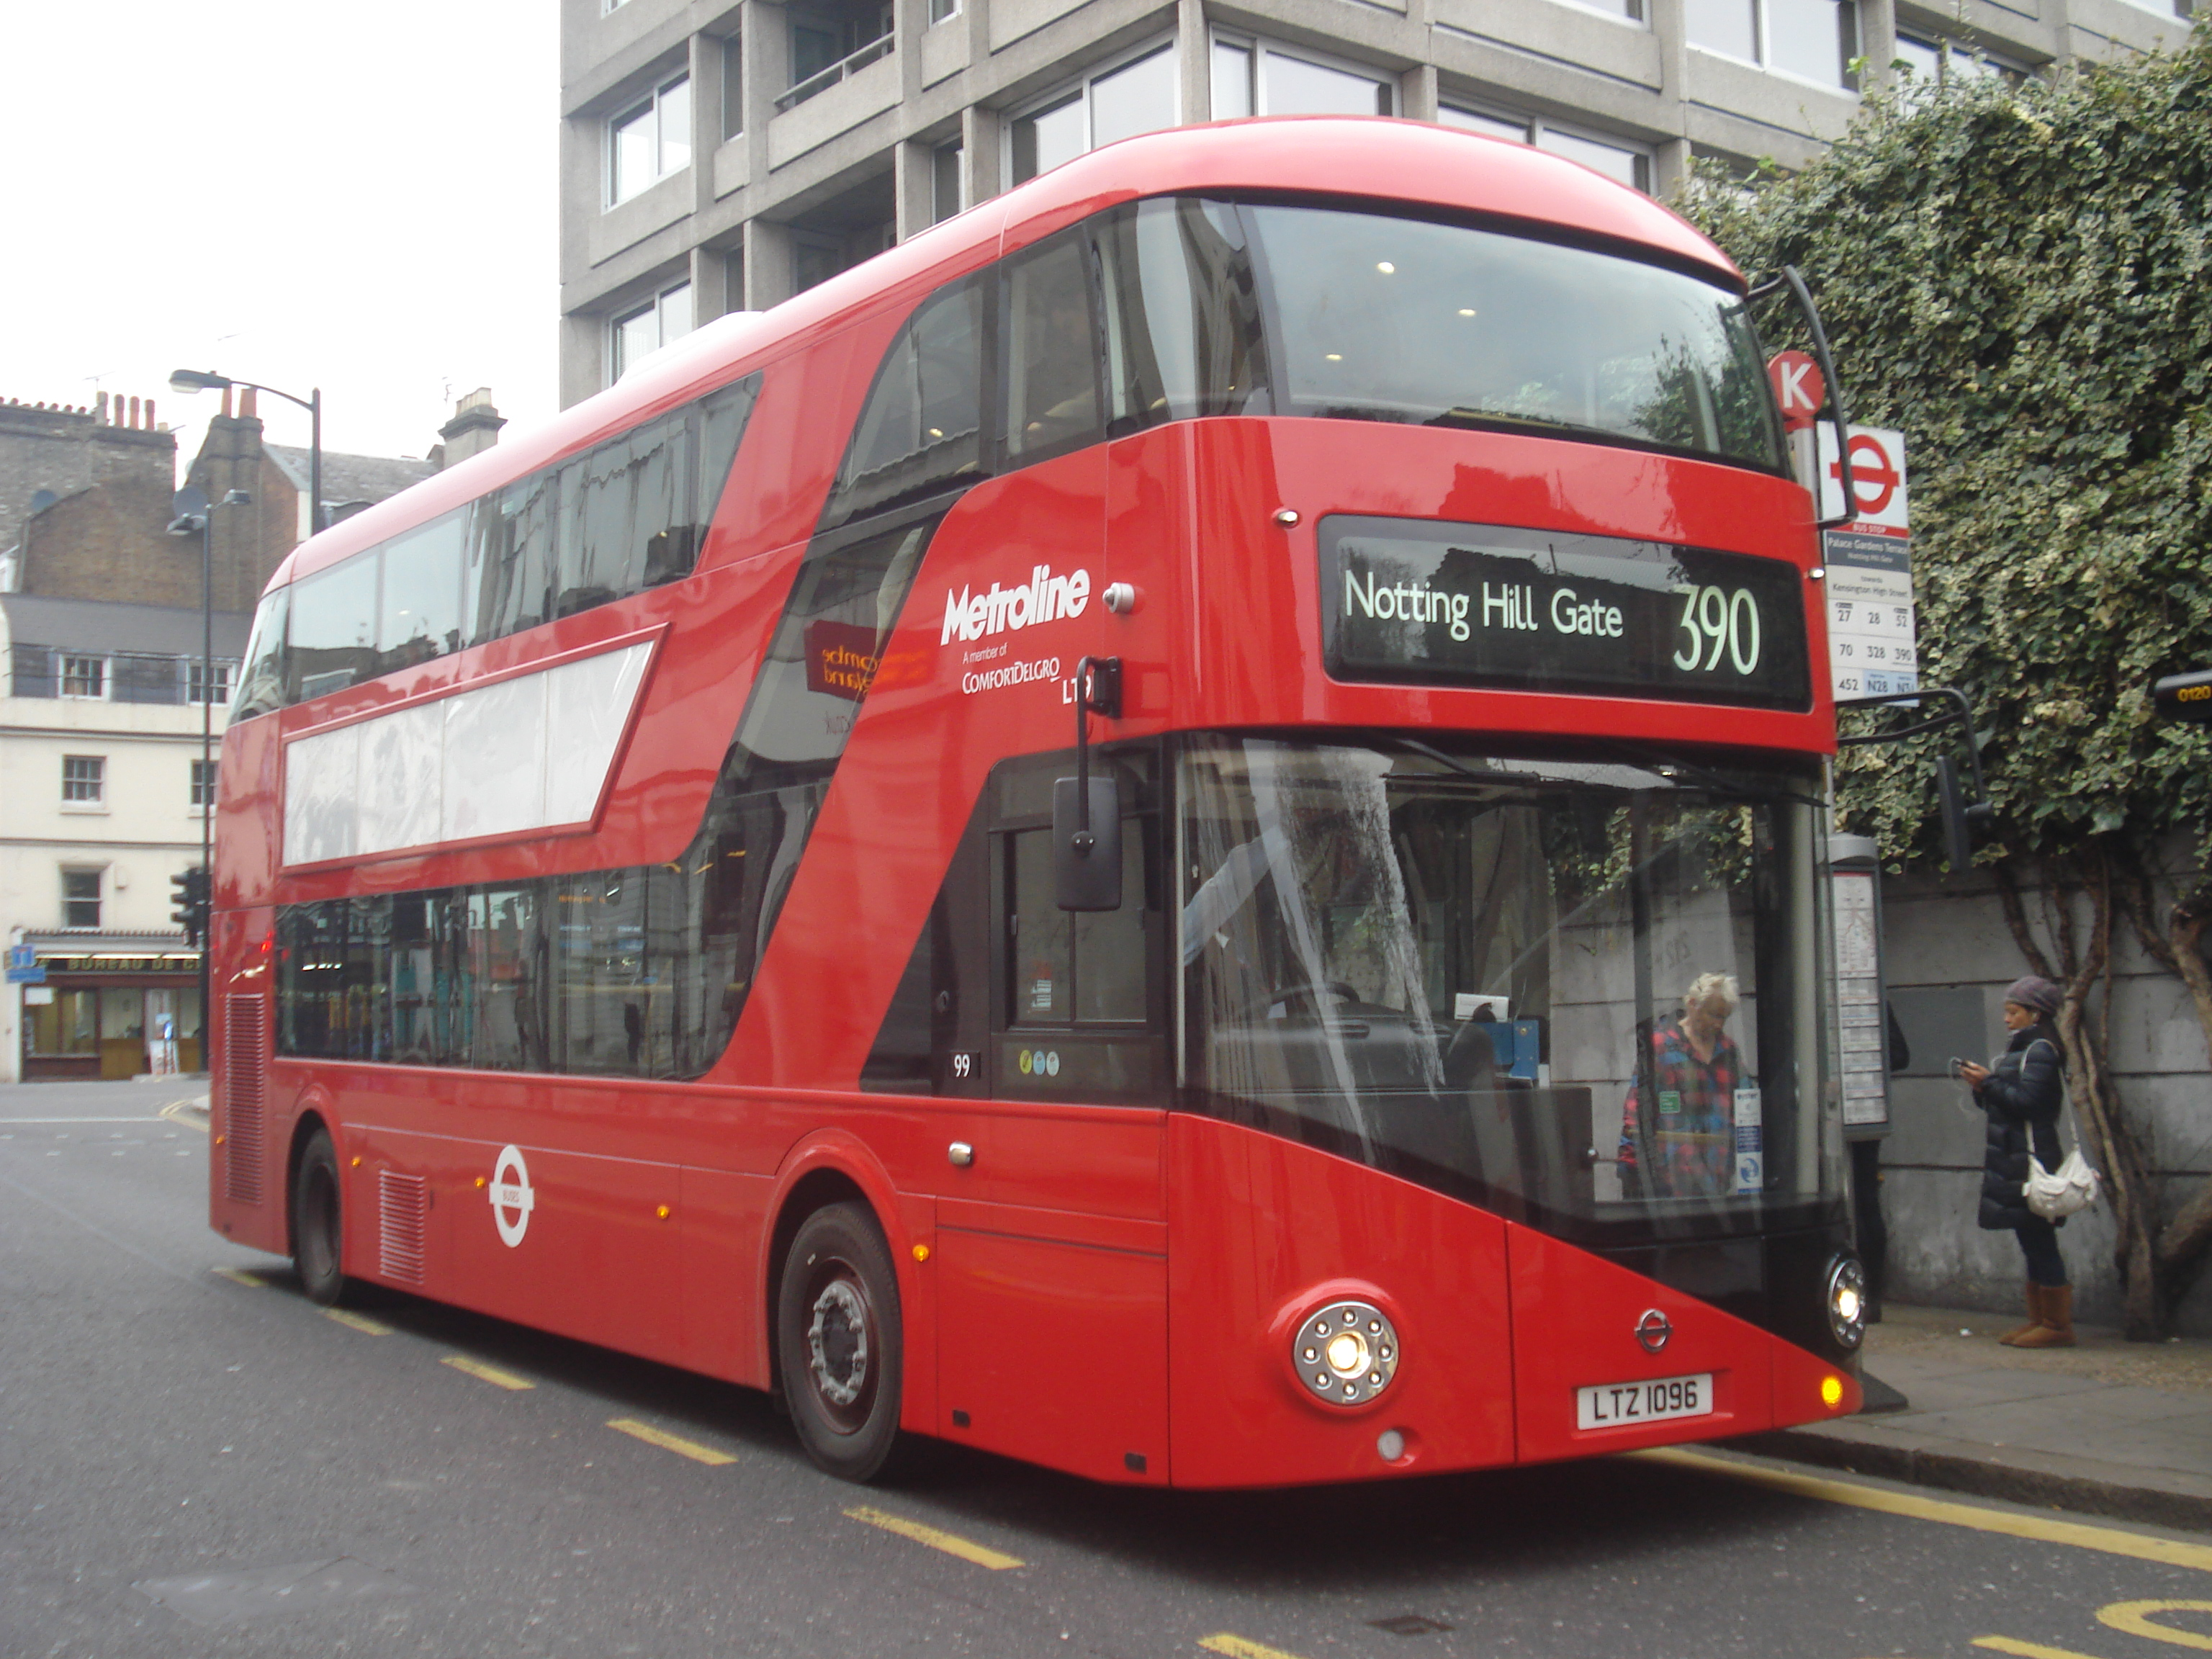 metroline bus lt96 (ltz 1096), route 390, 7 december 2013 (1).jpg